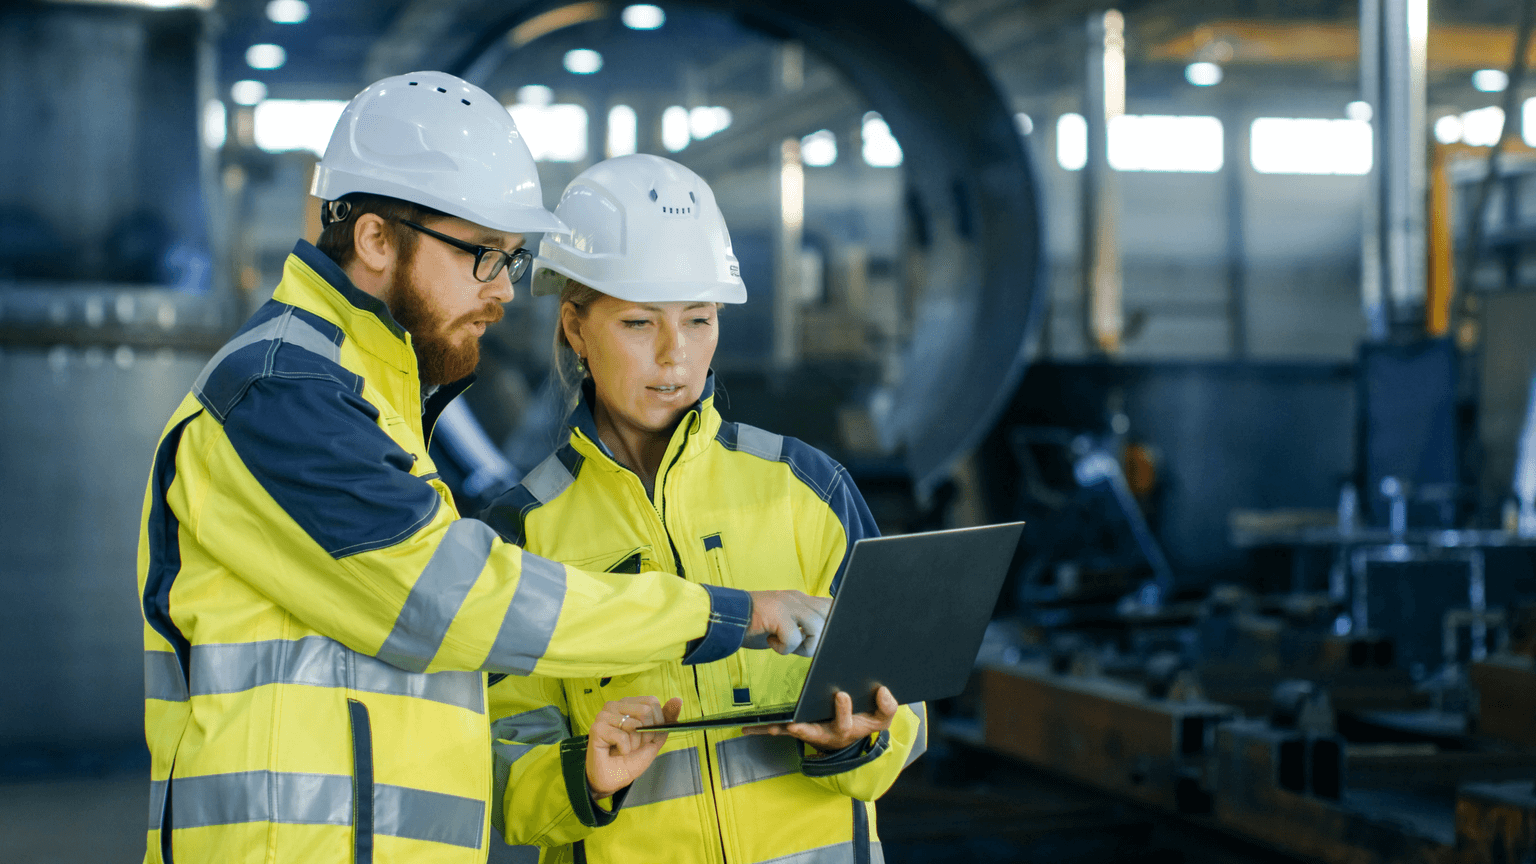 Male and female maintenance workers in a factory wearing hard hats and yellow reflective uniforms, holding a laptop. Photo